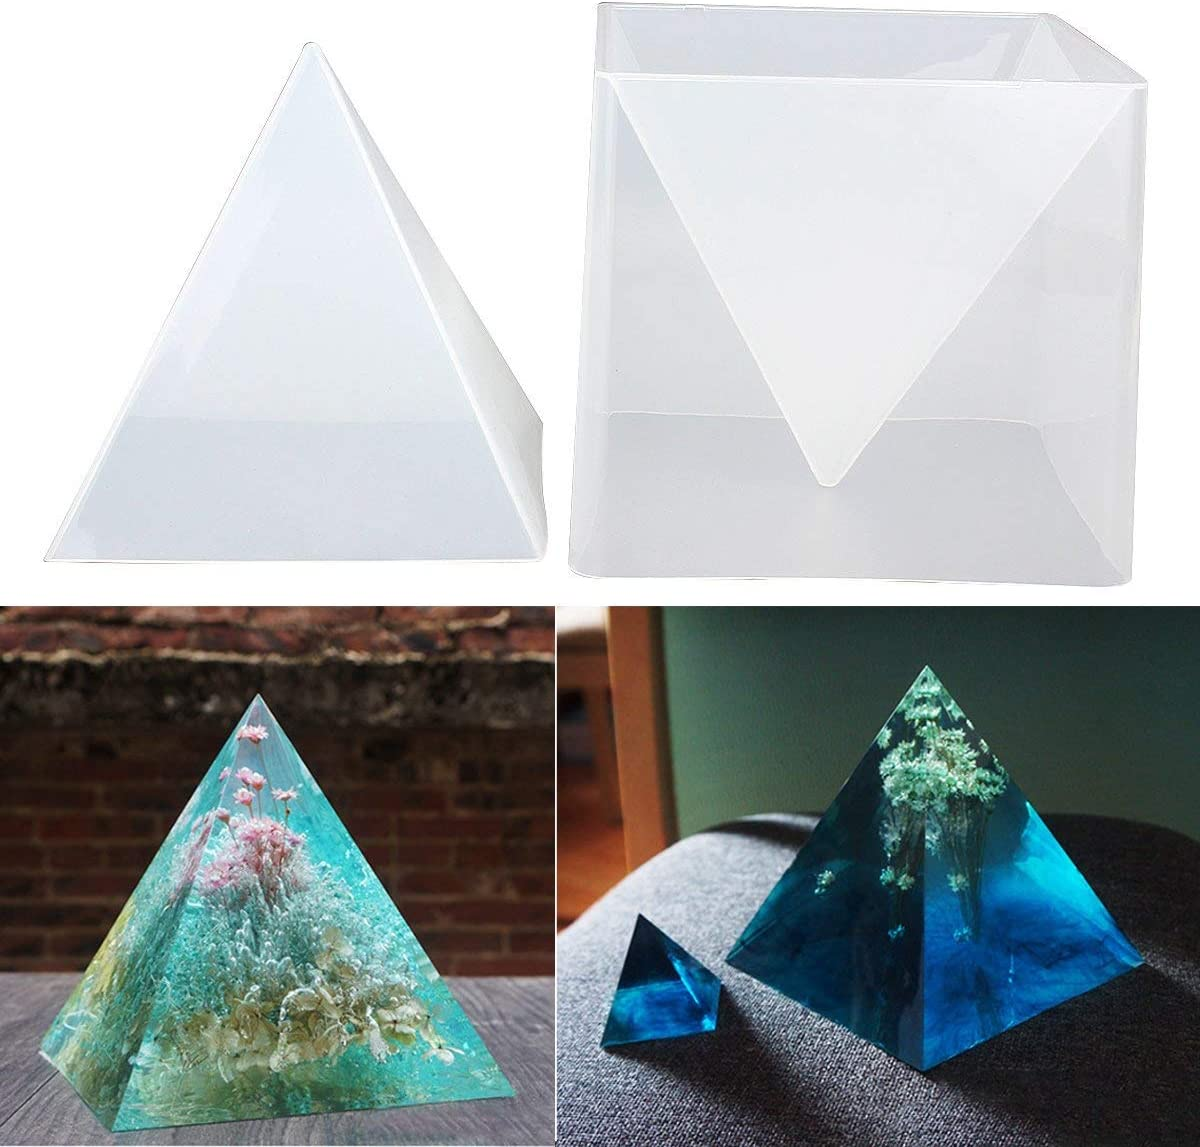 WAOving Super Pyramid Silicone Mould Resin Craft Jewelry Crystal Mold with Plastic Frame